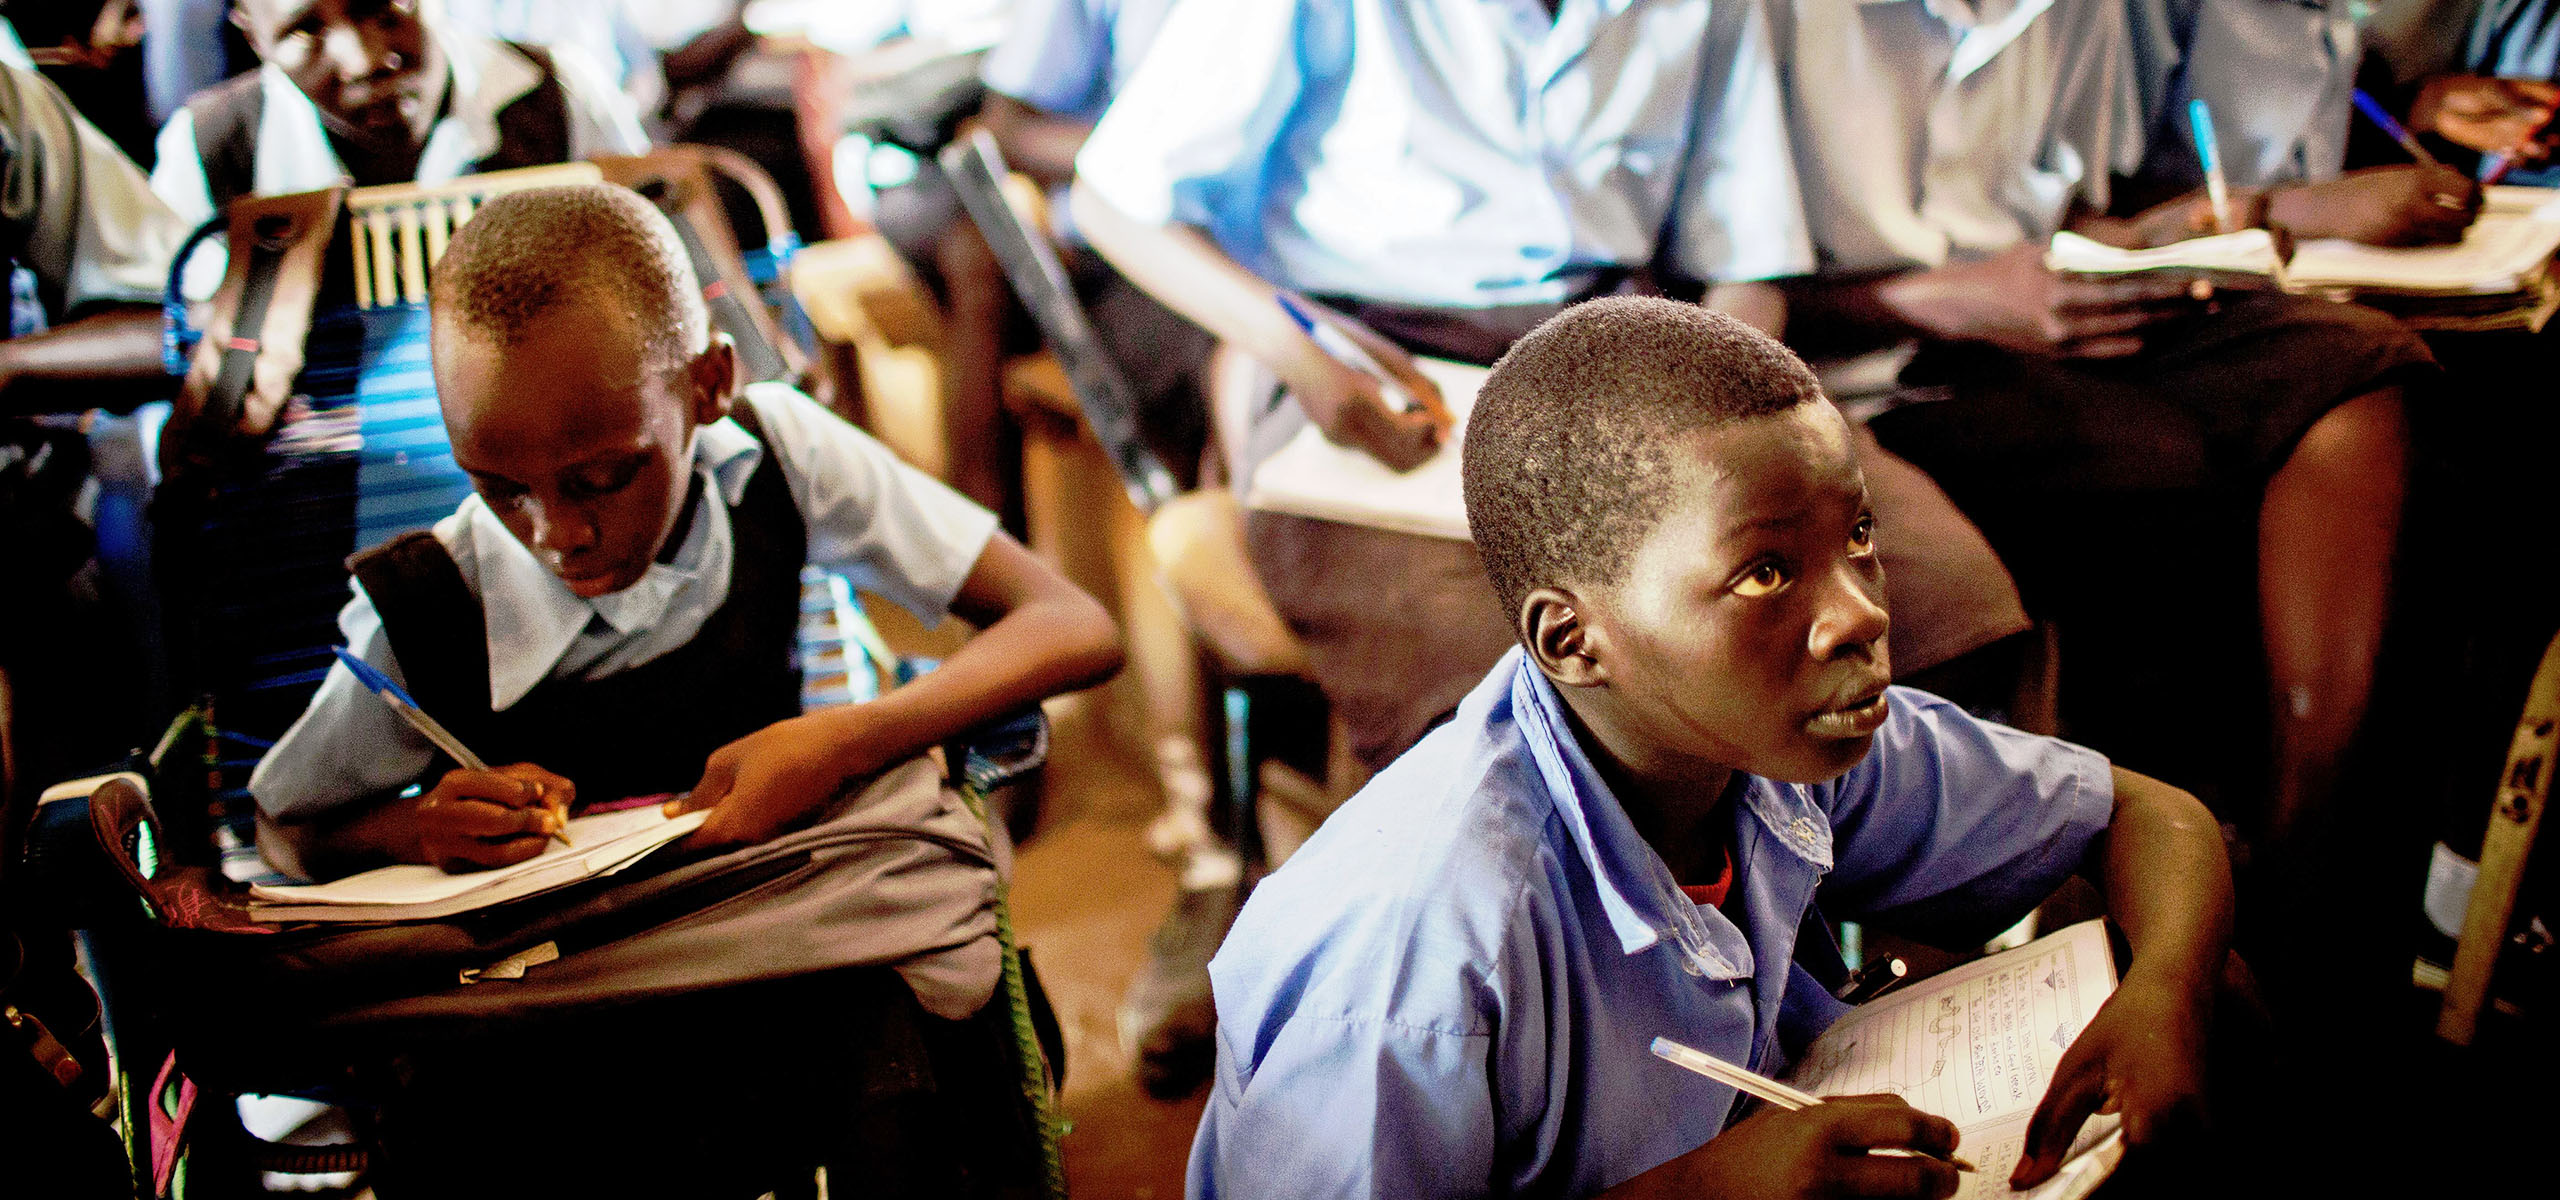 sudan education Learn more about sudan education objectives and strategy, view grant information and education data, and explore the results and progress made.